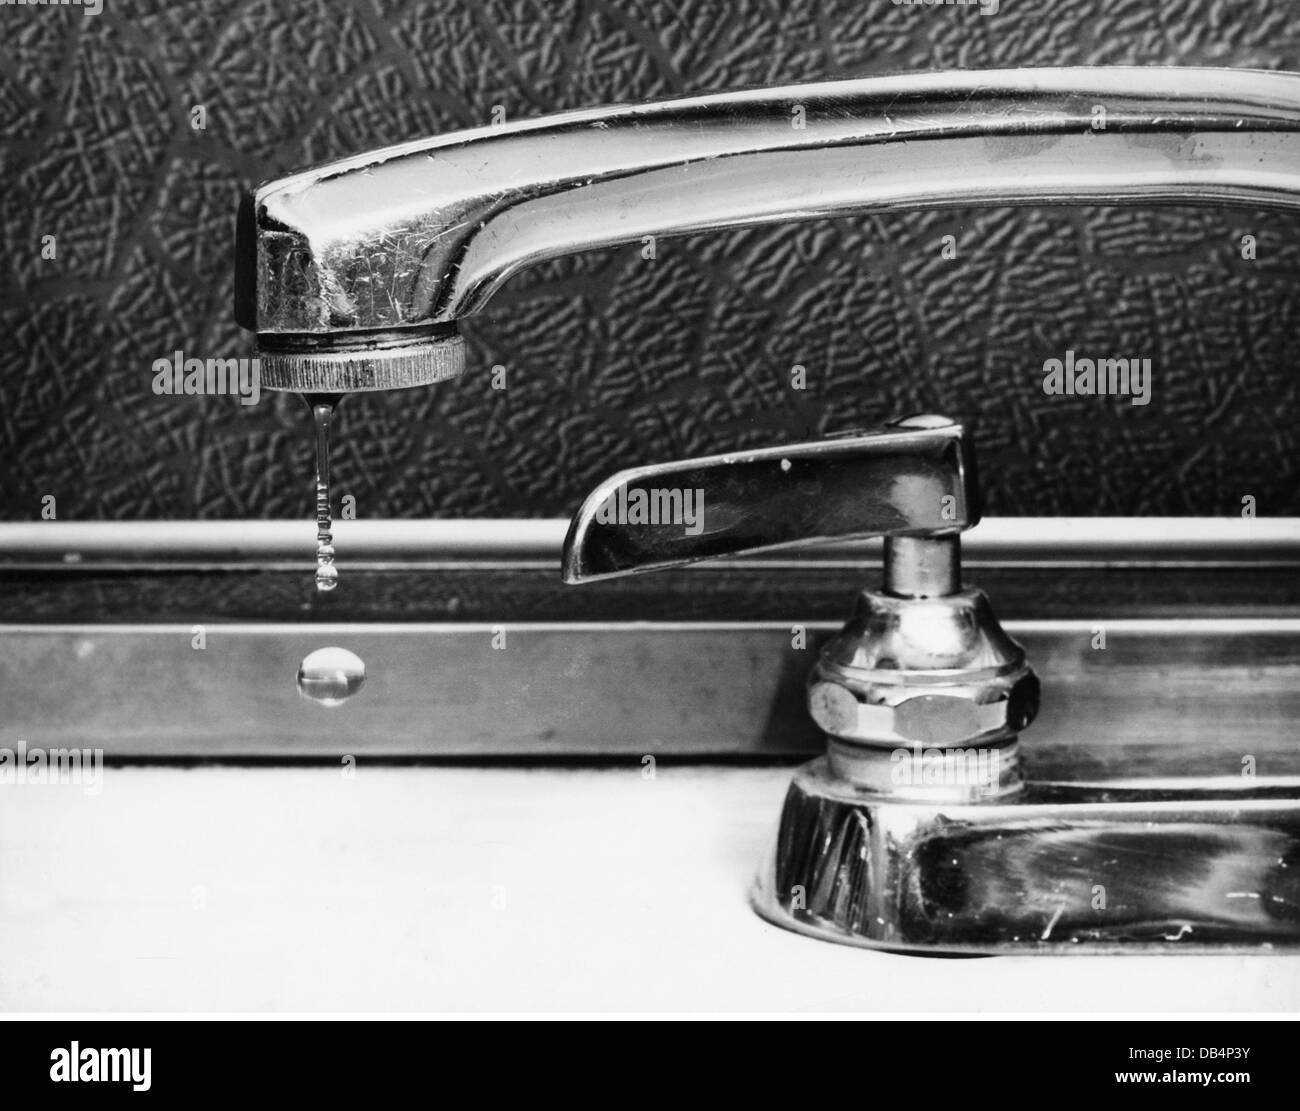 Tap Dripping Water Black and White Stock Photos & Images - Alamy